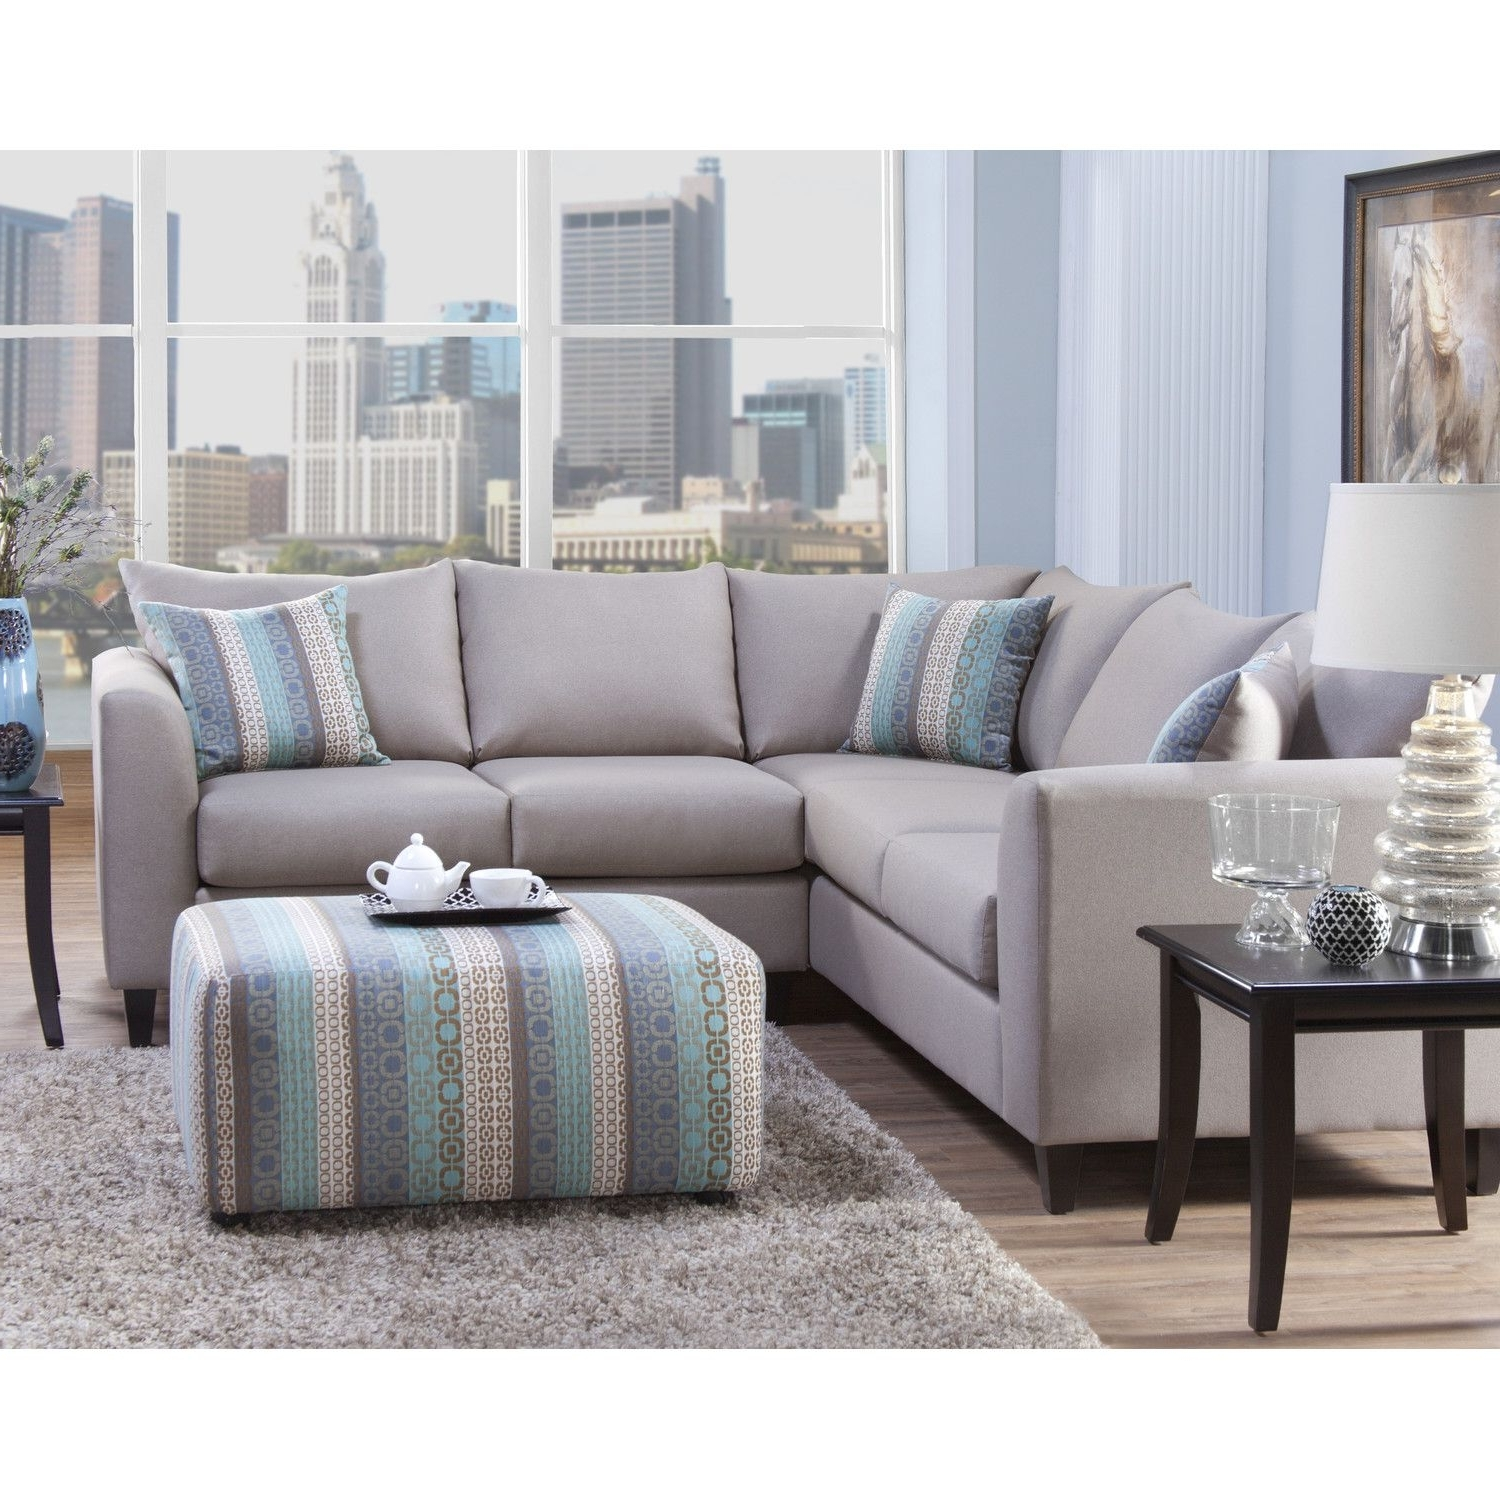 Free Shipping! Shop Wayfair For Serta Upholstery Sectional – Great With Favorite Ontario Canada Sectional Sofas (View 12 of 20)